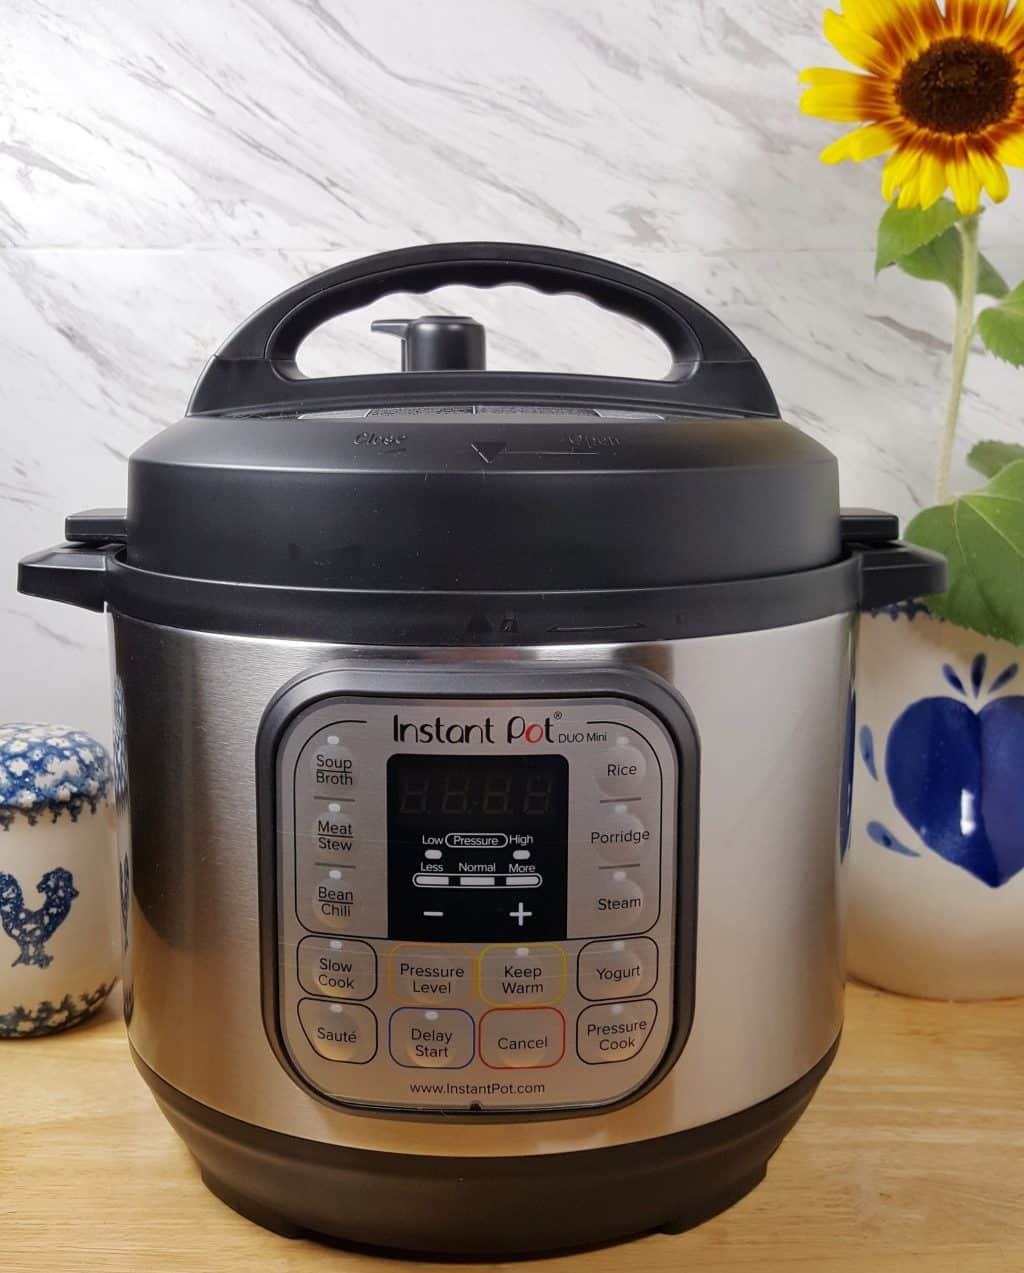 Instant Pot Duo Mini 7-in-1 Pressure Cooker Review | This Old Gal